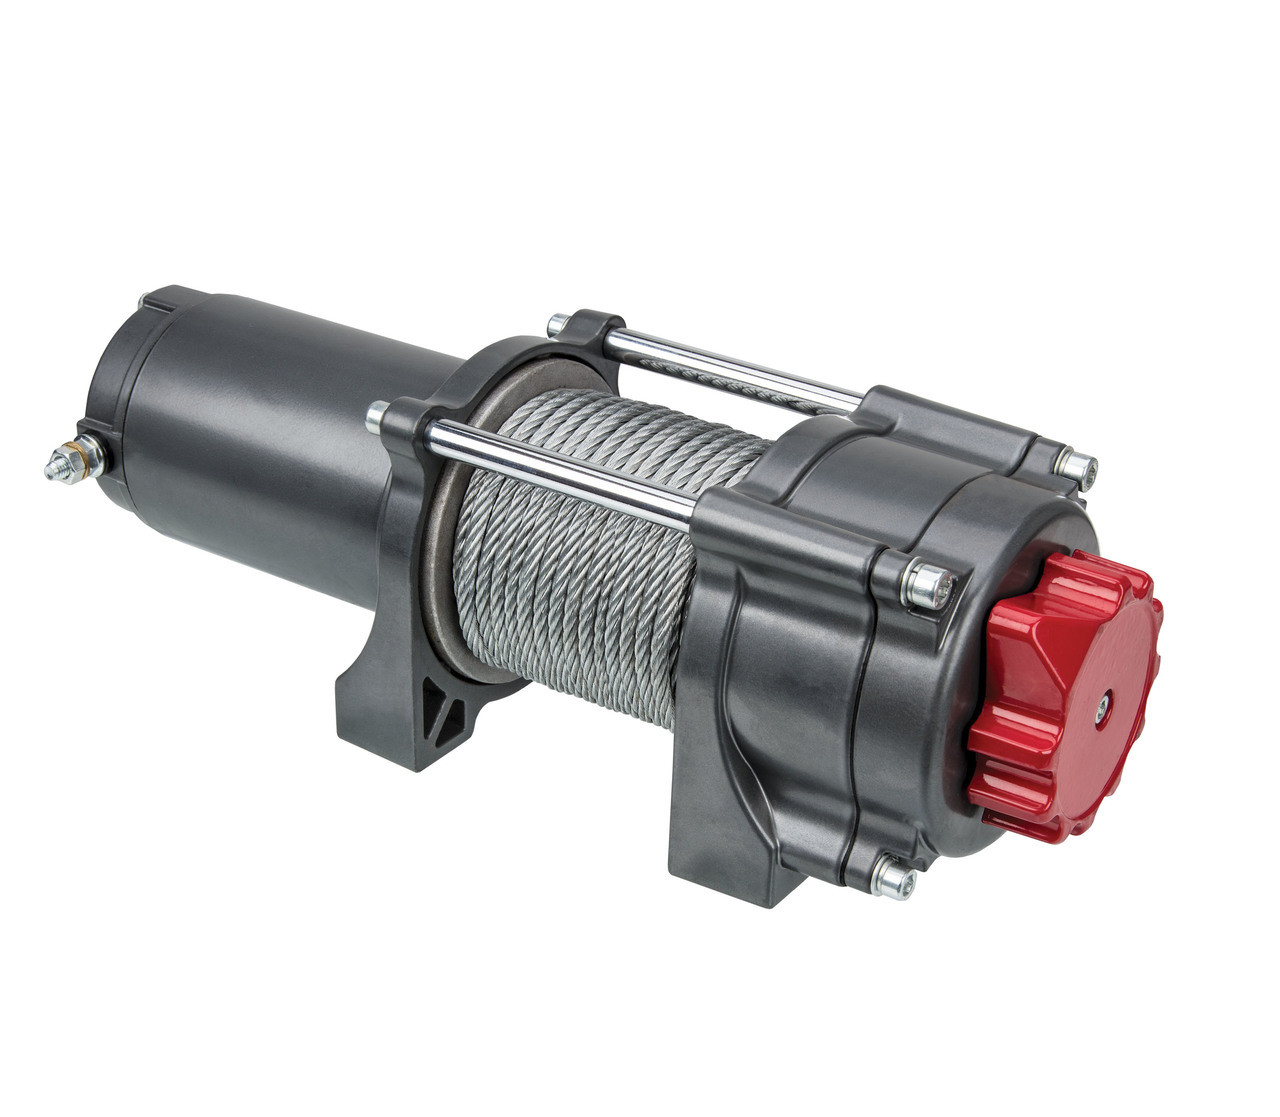 500631 --- BULLDOG XLT Electric ATV/Utility Winch, 3500 lb Capacity